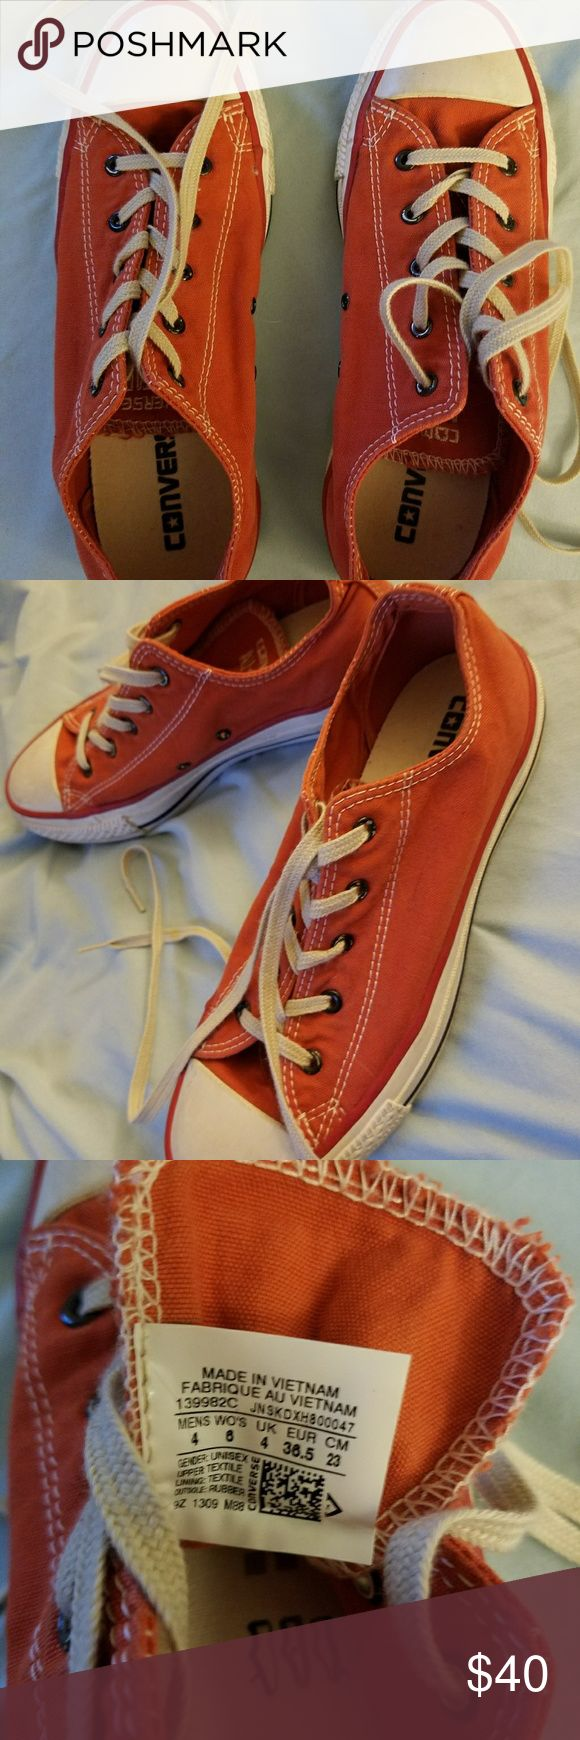 Orange Converse NWOT Burnt Orange converse purchased from Free People. Worn once, perfect condition. Converse Shoes Sneakers